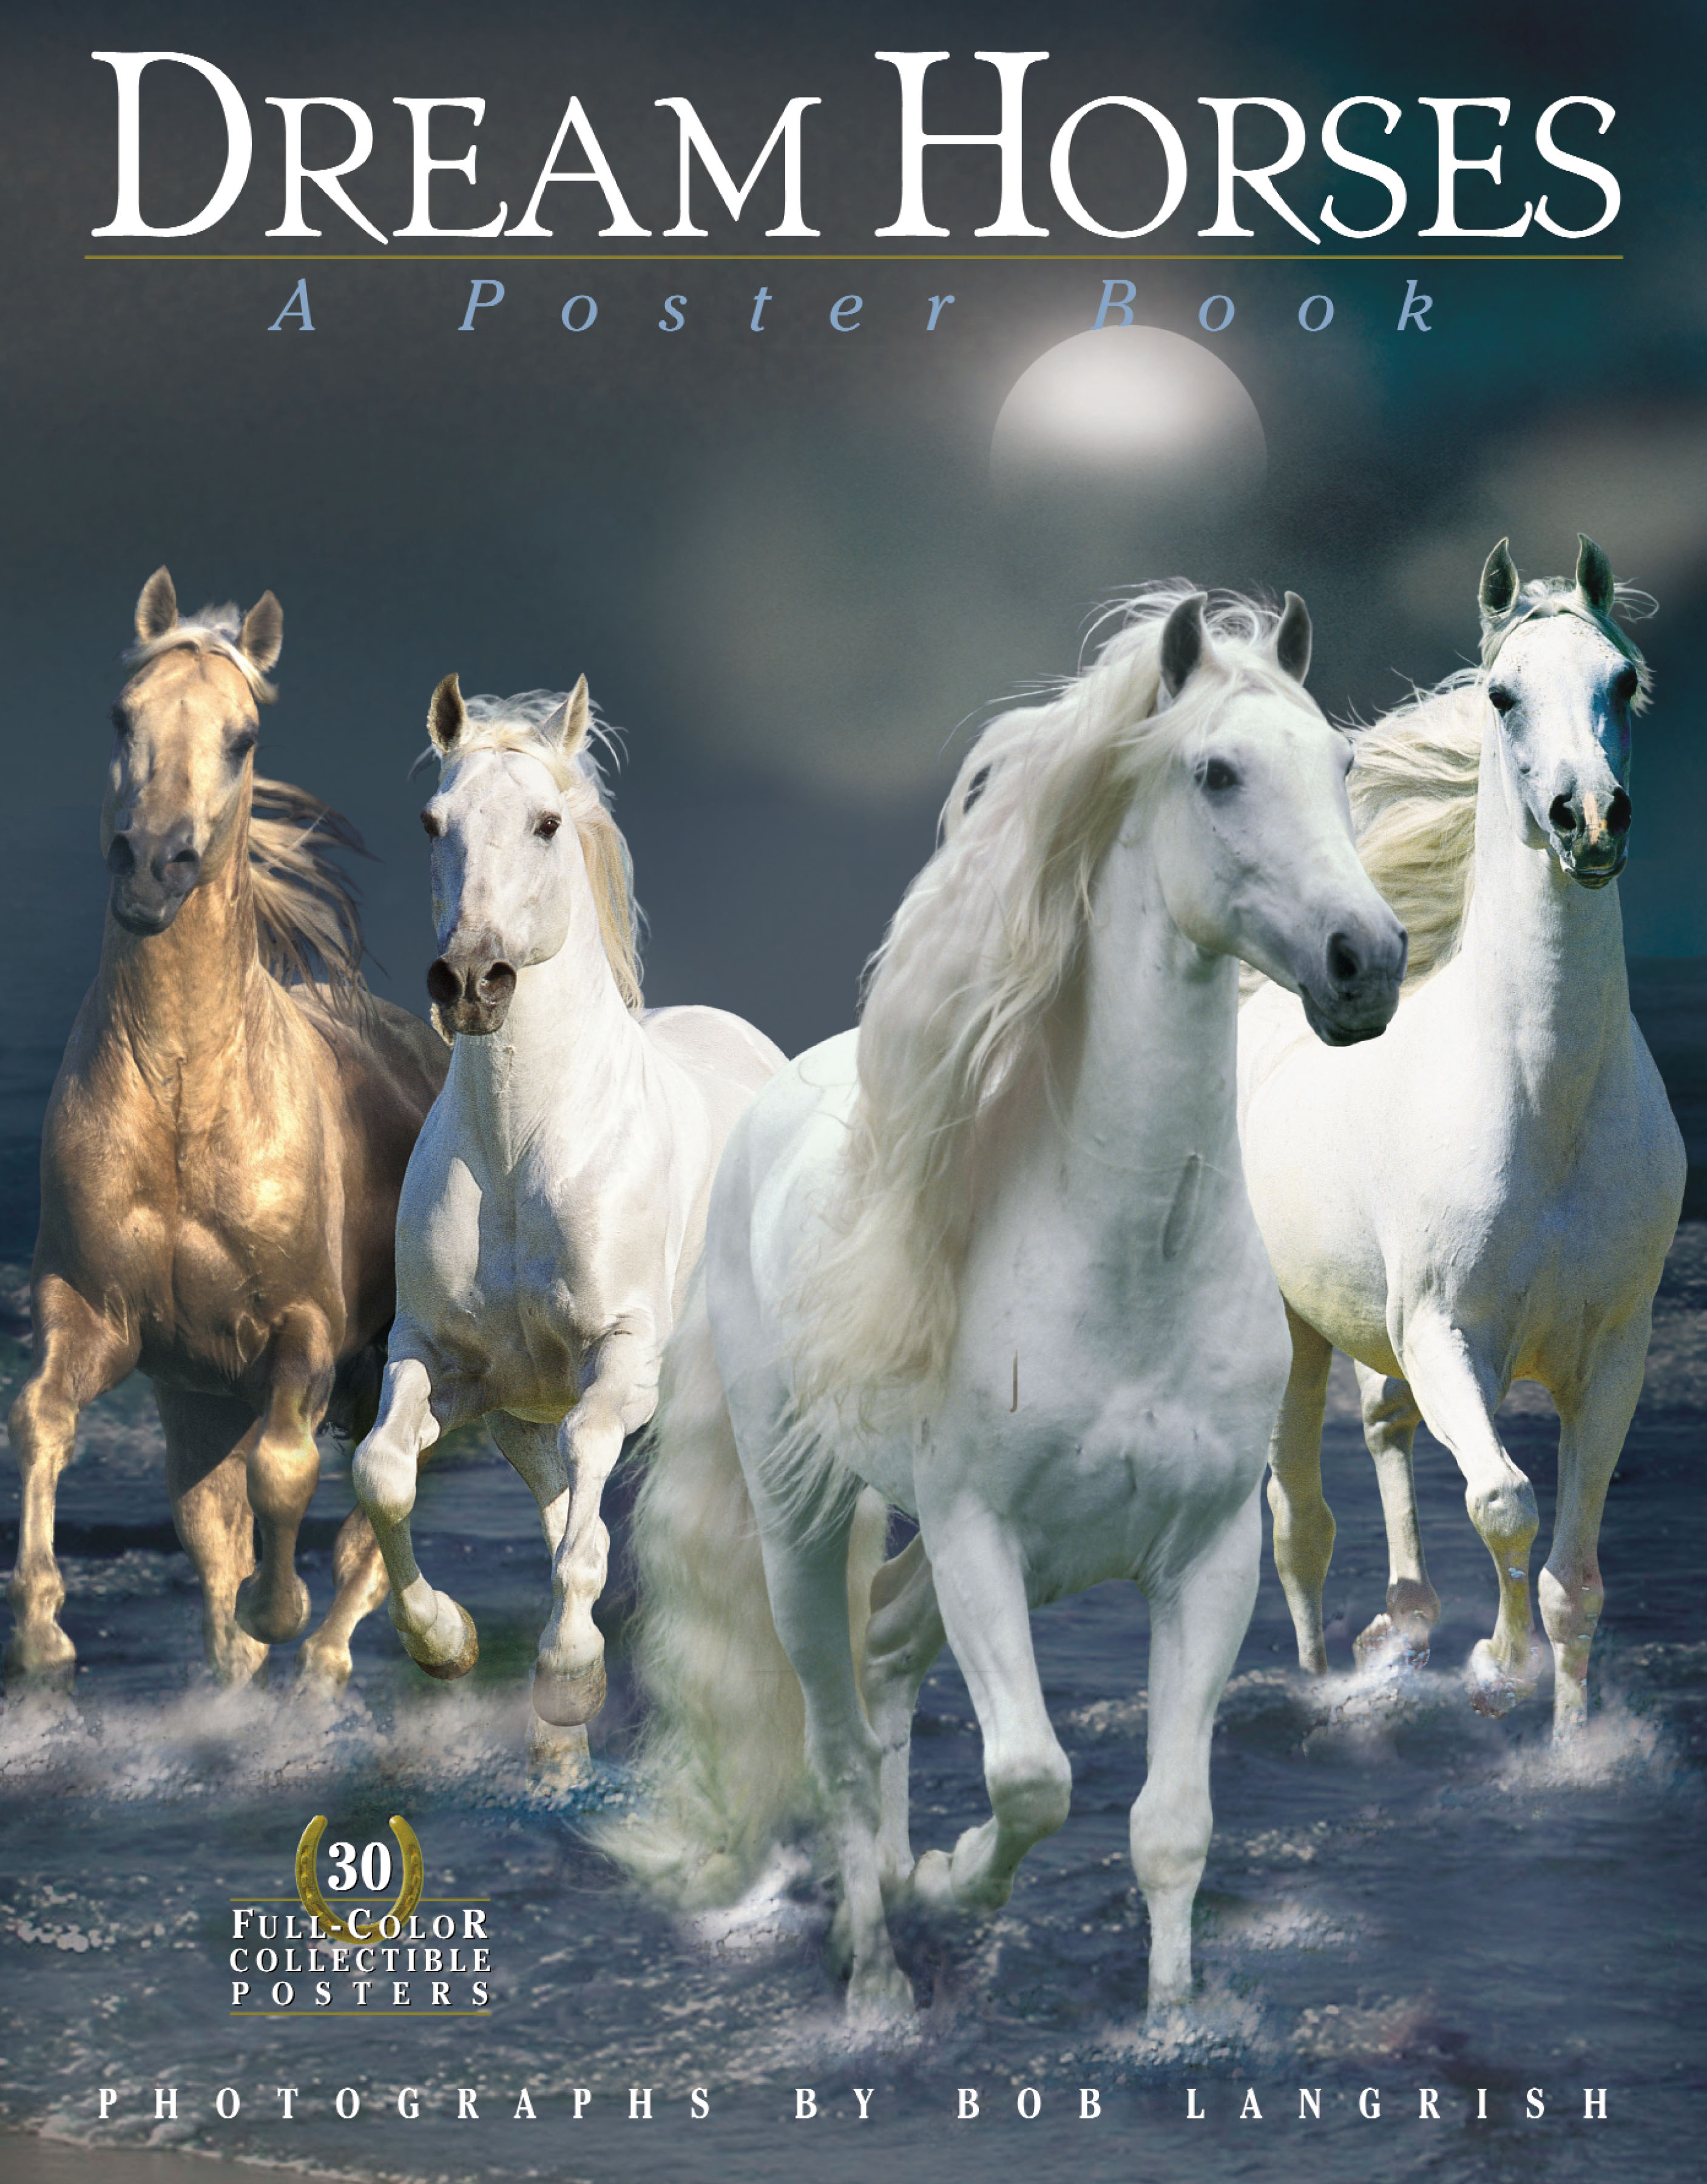 Dream Horses: A Poster Book  - Deborah Burns